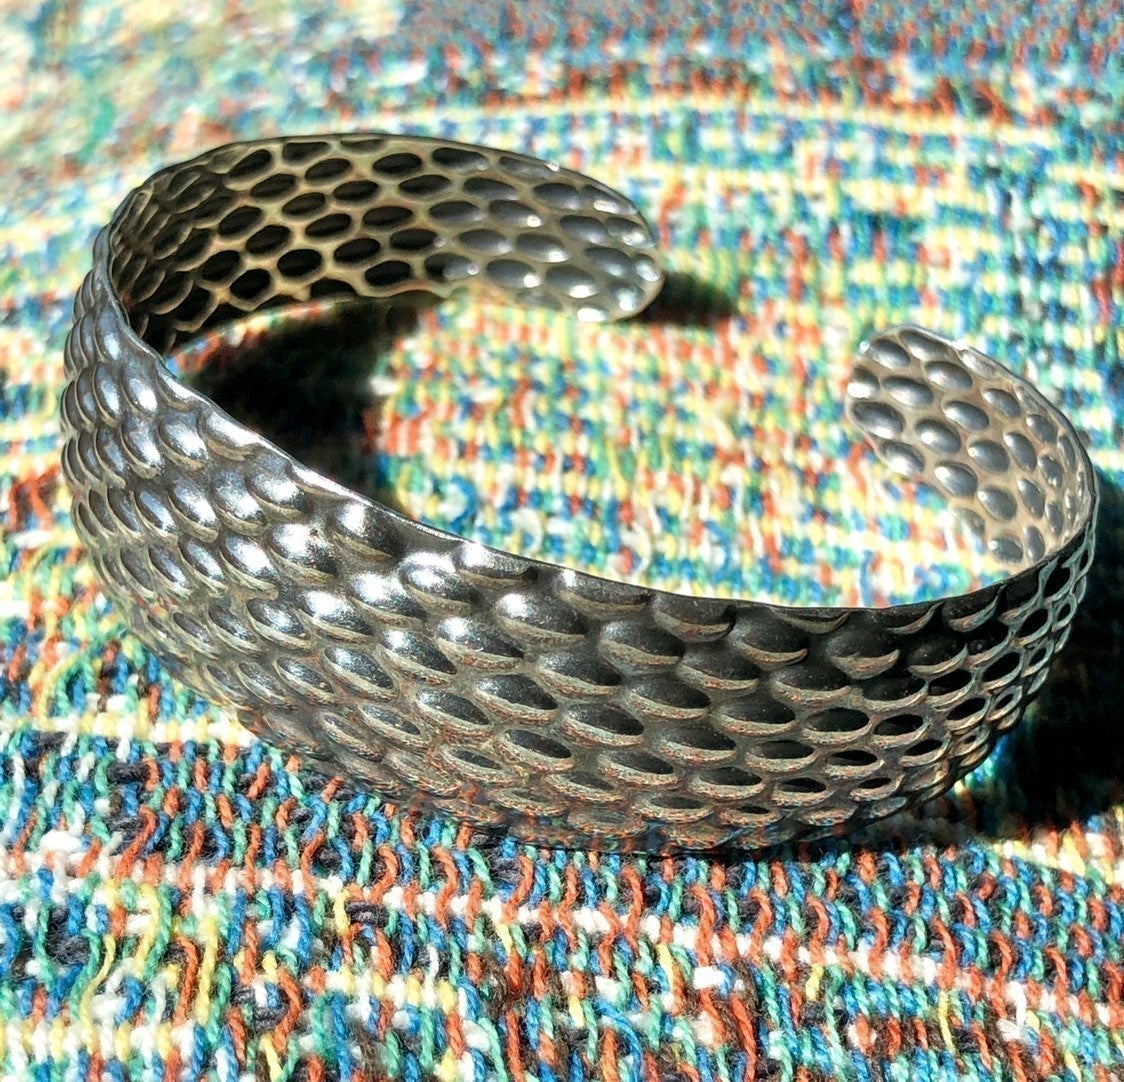 Hand Crafted Sterling Silver Wrist Cuff